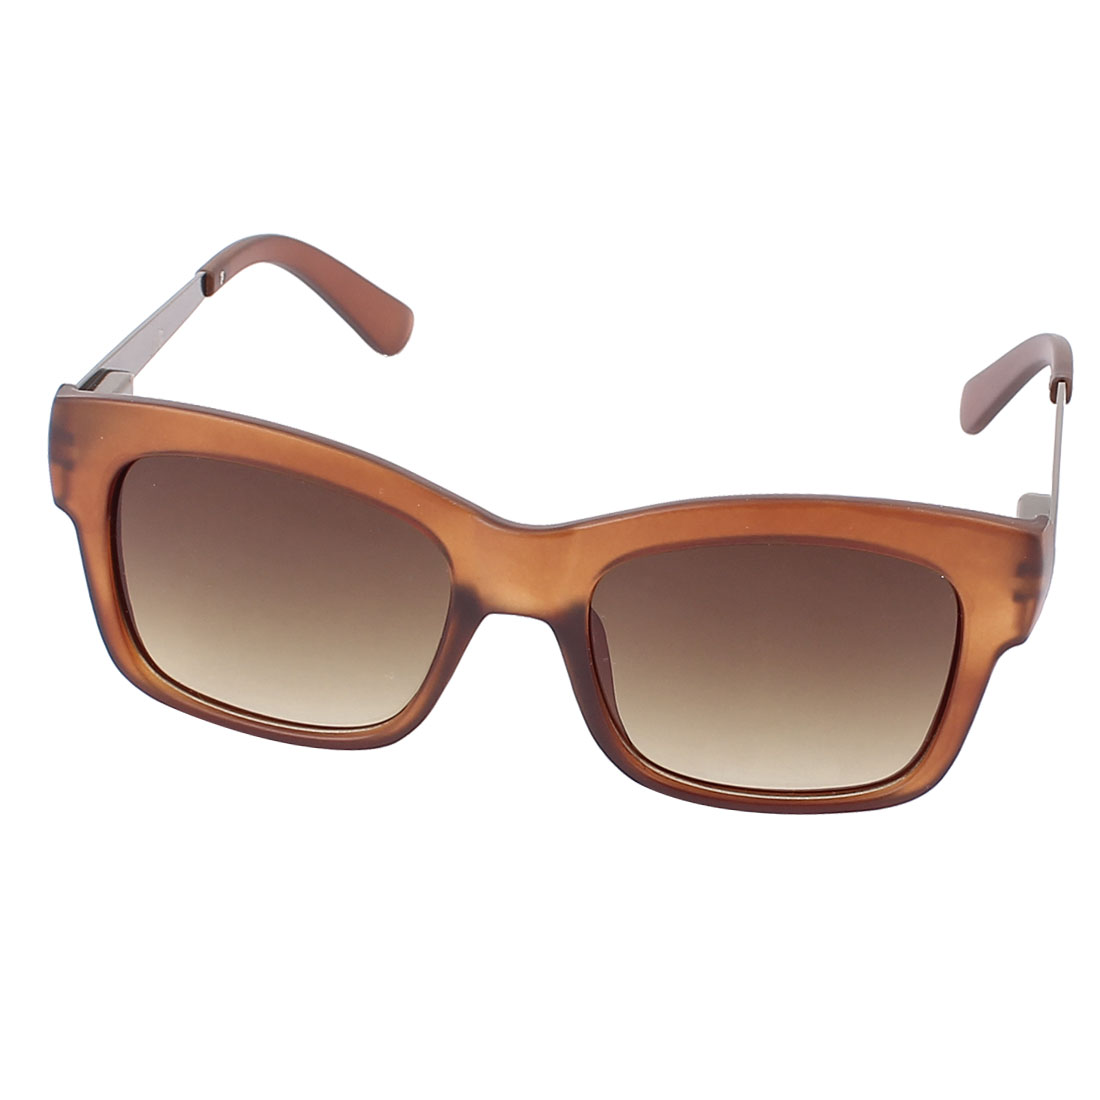 Outdoor Single Bridge Gradient Brown Lens UV400 Protection Sunglasses